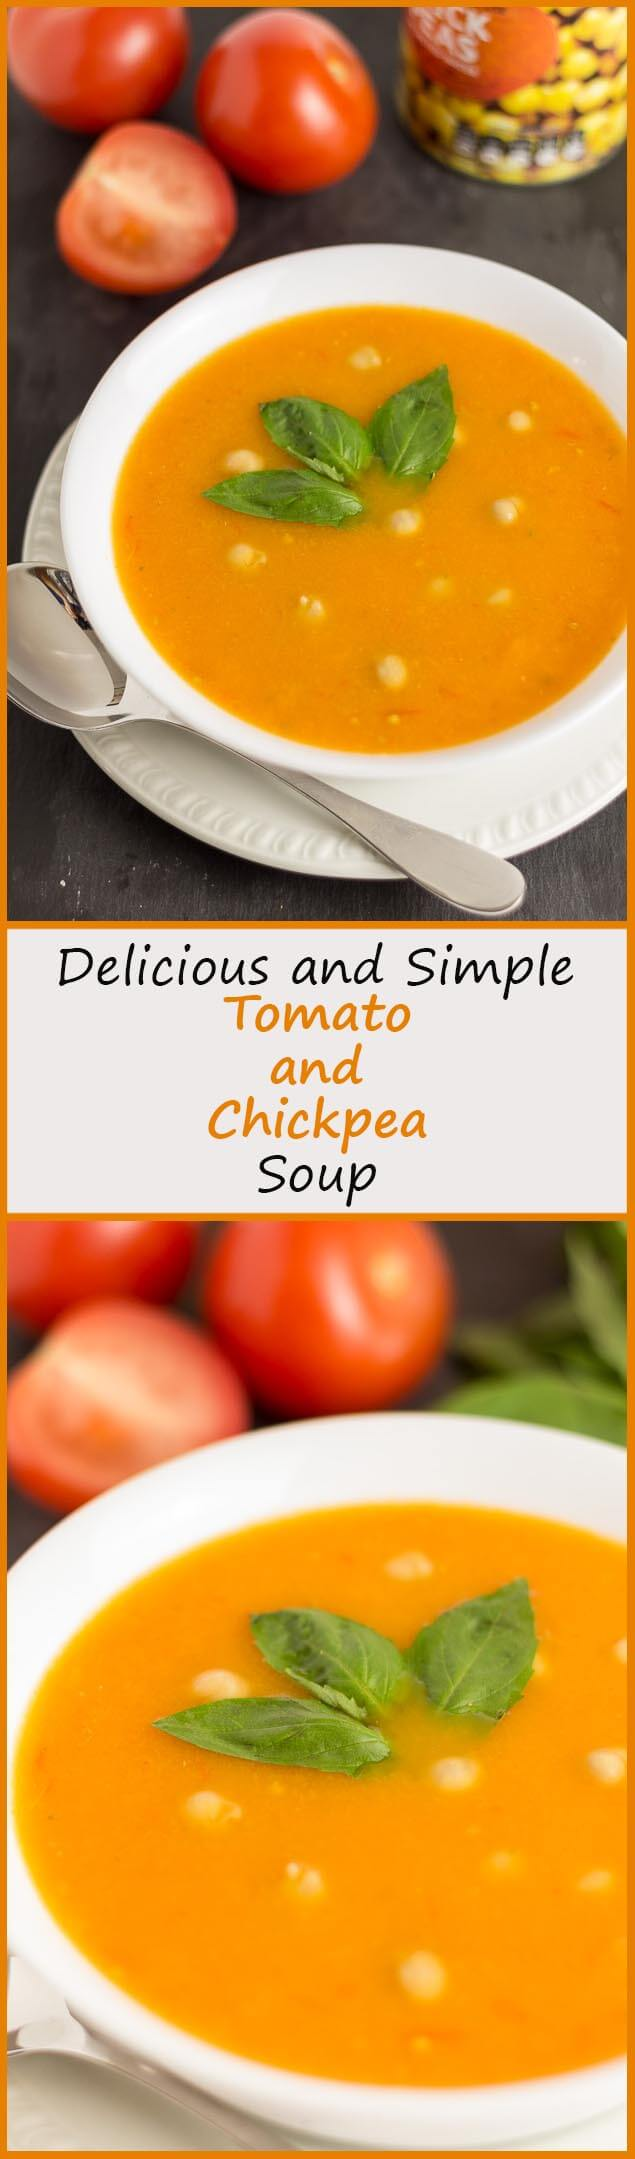 Delicious and simple, this low calorie tomato and chickpea soup is a comforting and soul-warming recipe. A perfect way to use up over ripe tomatoes or those ones you find reduced in your local supermarket. Either way, this is a simple recipe you'll want to make over and over again.